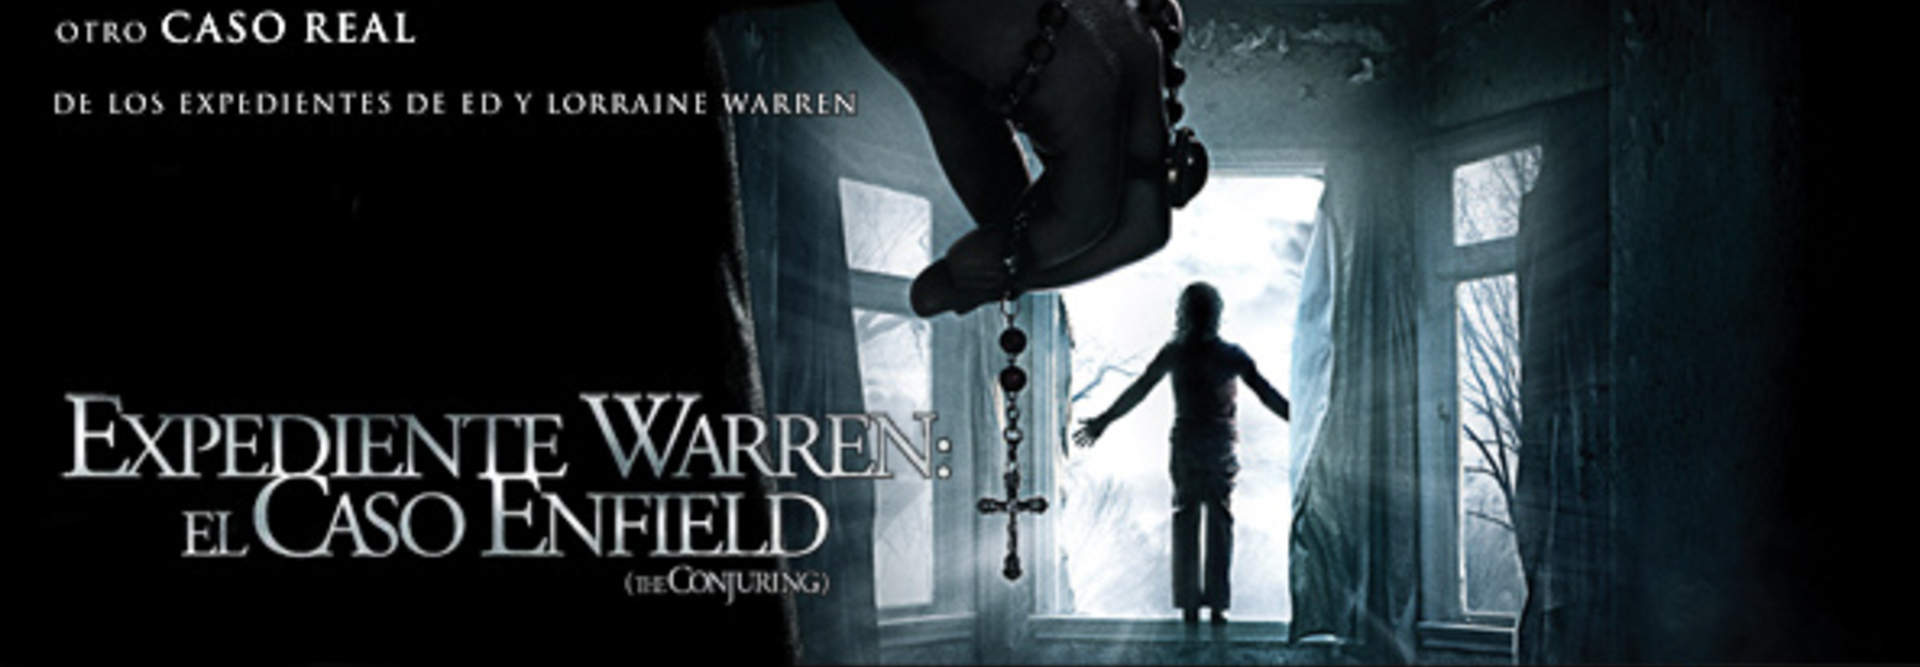 Home expediente warren el caso enfield